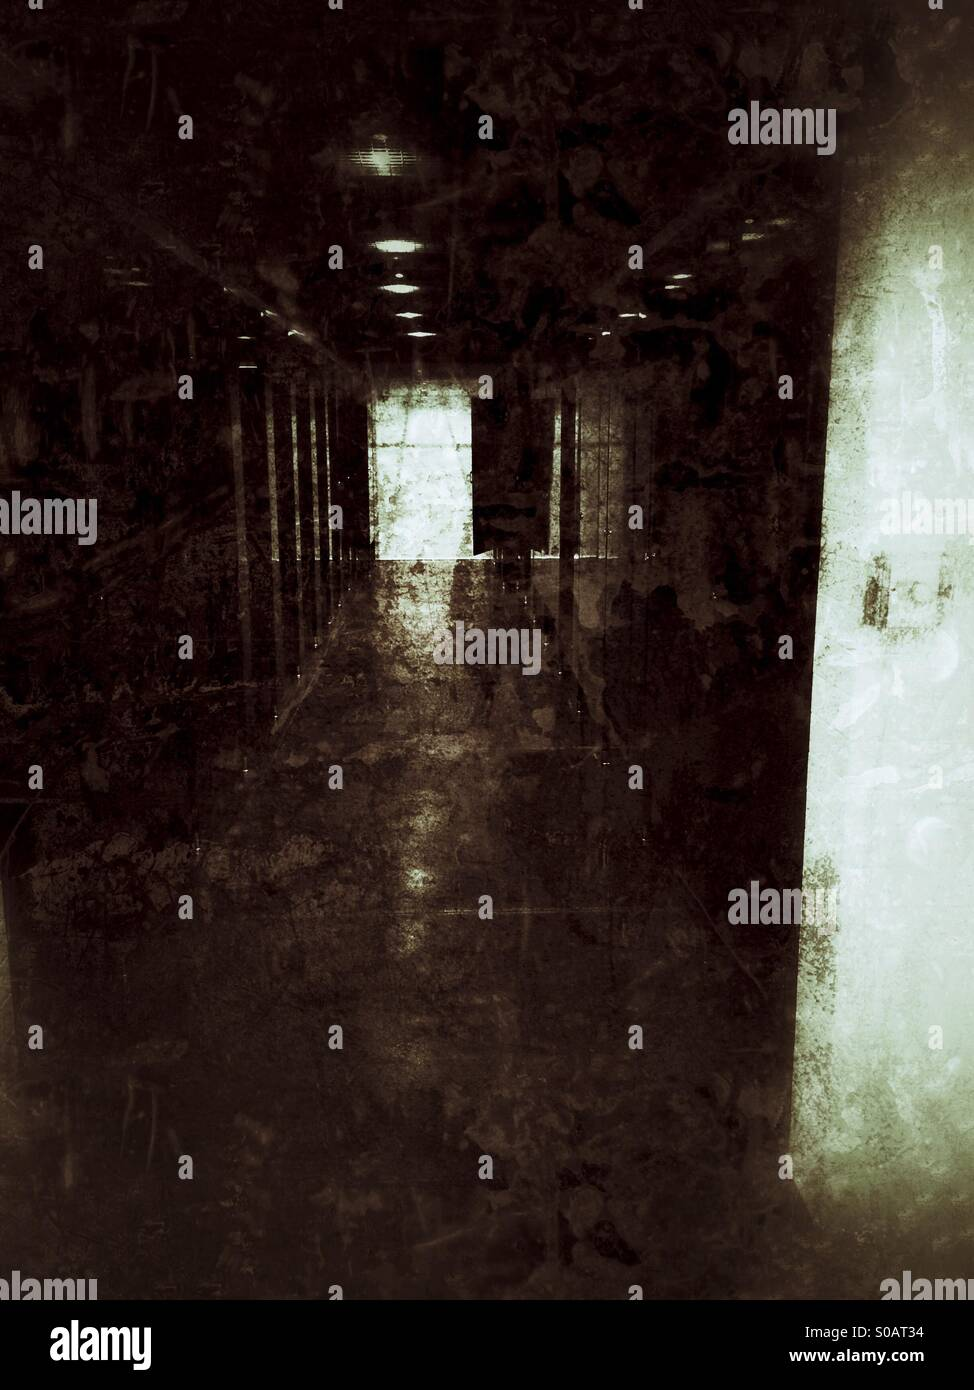 Unknown in a dark hallway - Stock Image